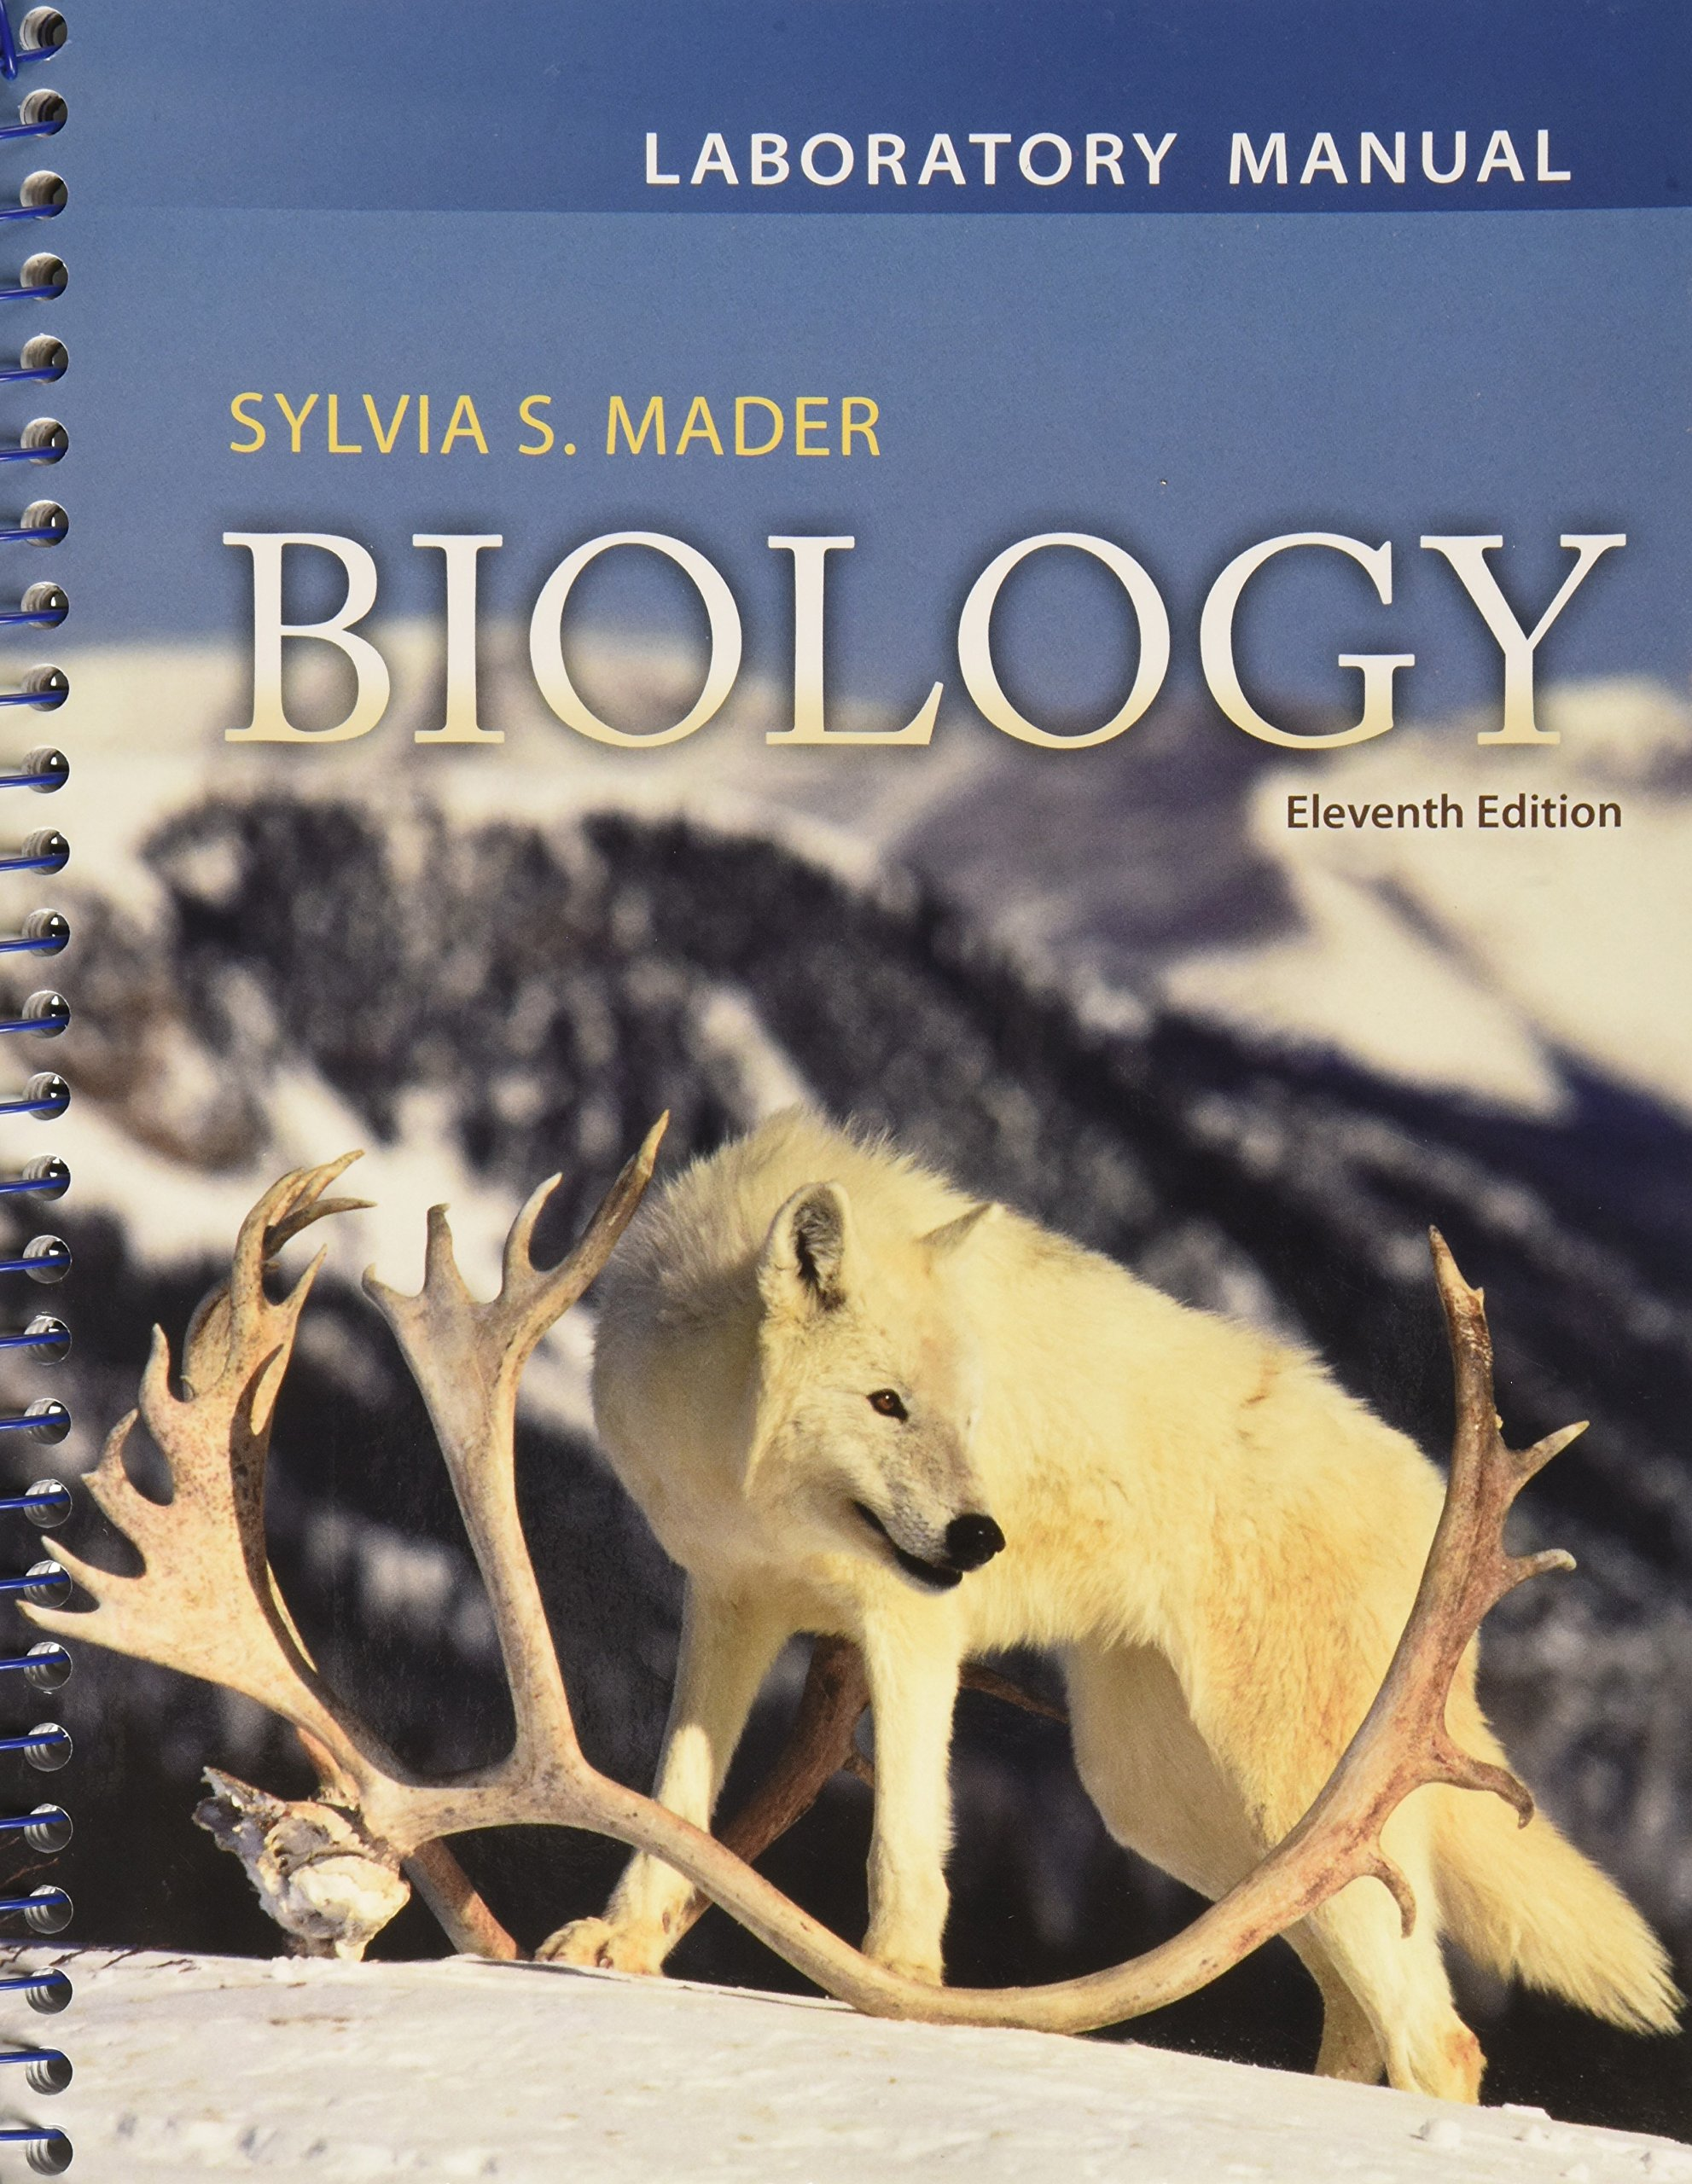 Lab Manual for Biology [Spiral-bound]: aa: 9780077479718: Amazon.com: Books